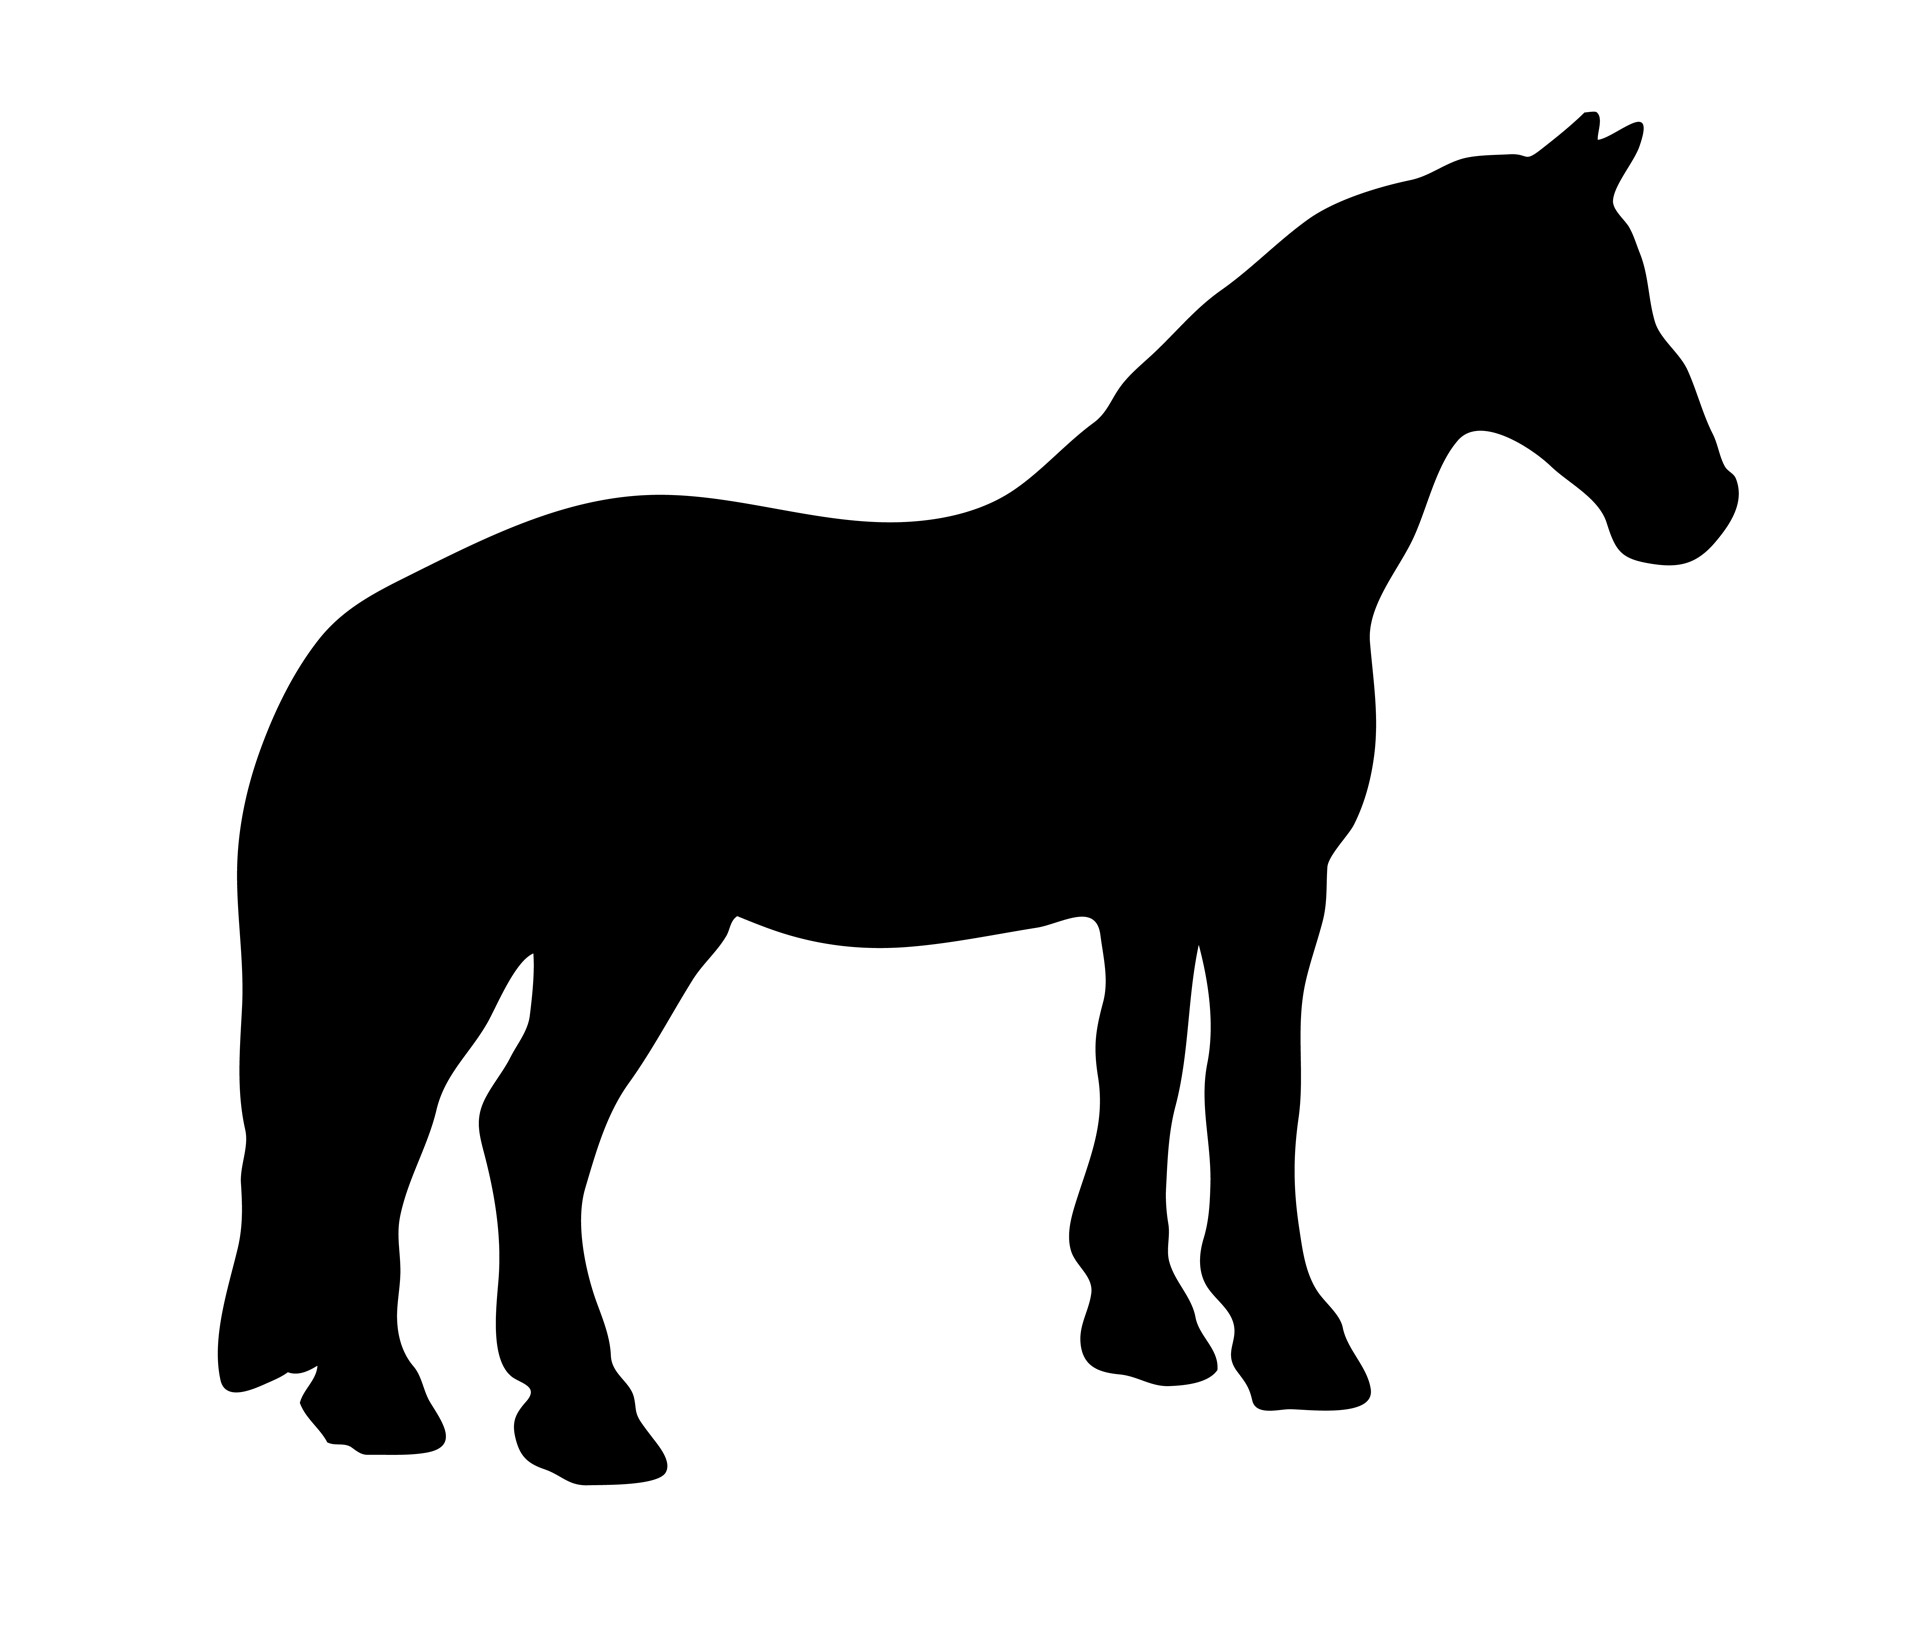 horse silhouette clip art at getdrawings com free for personal use rh getdrawings com horse clipart pictures horse clip art svg